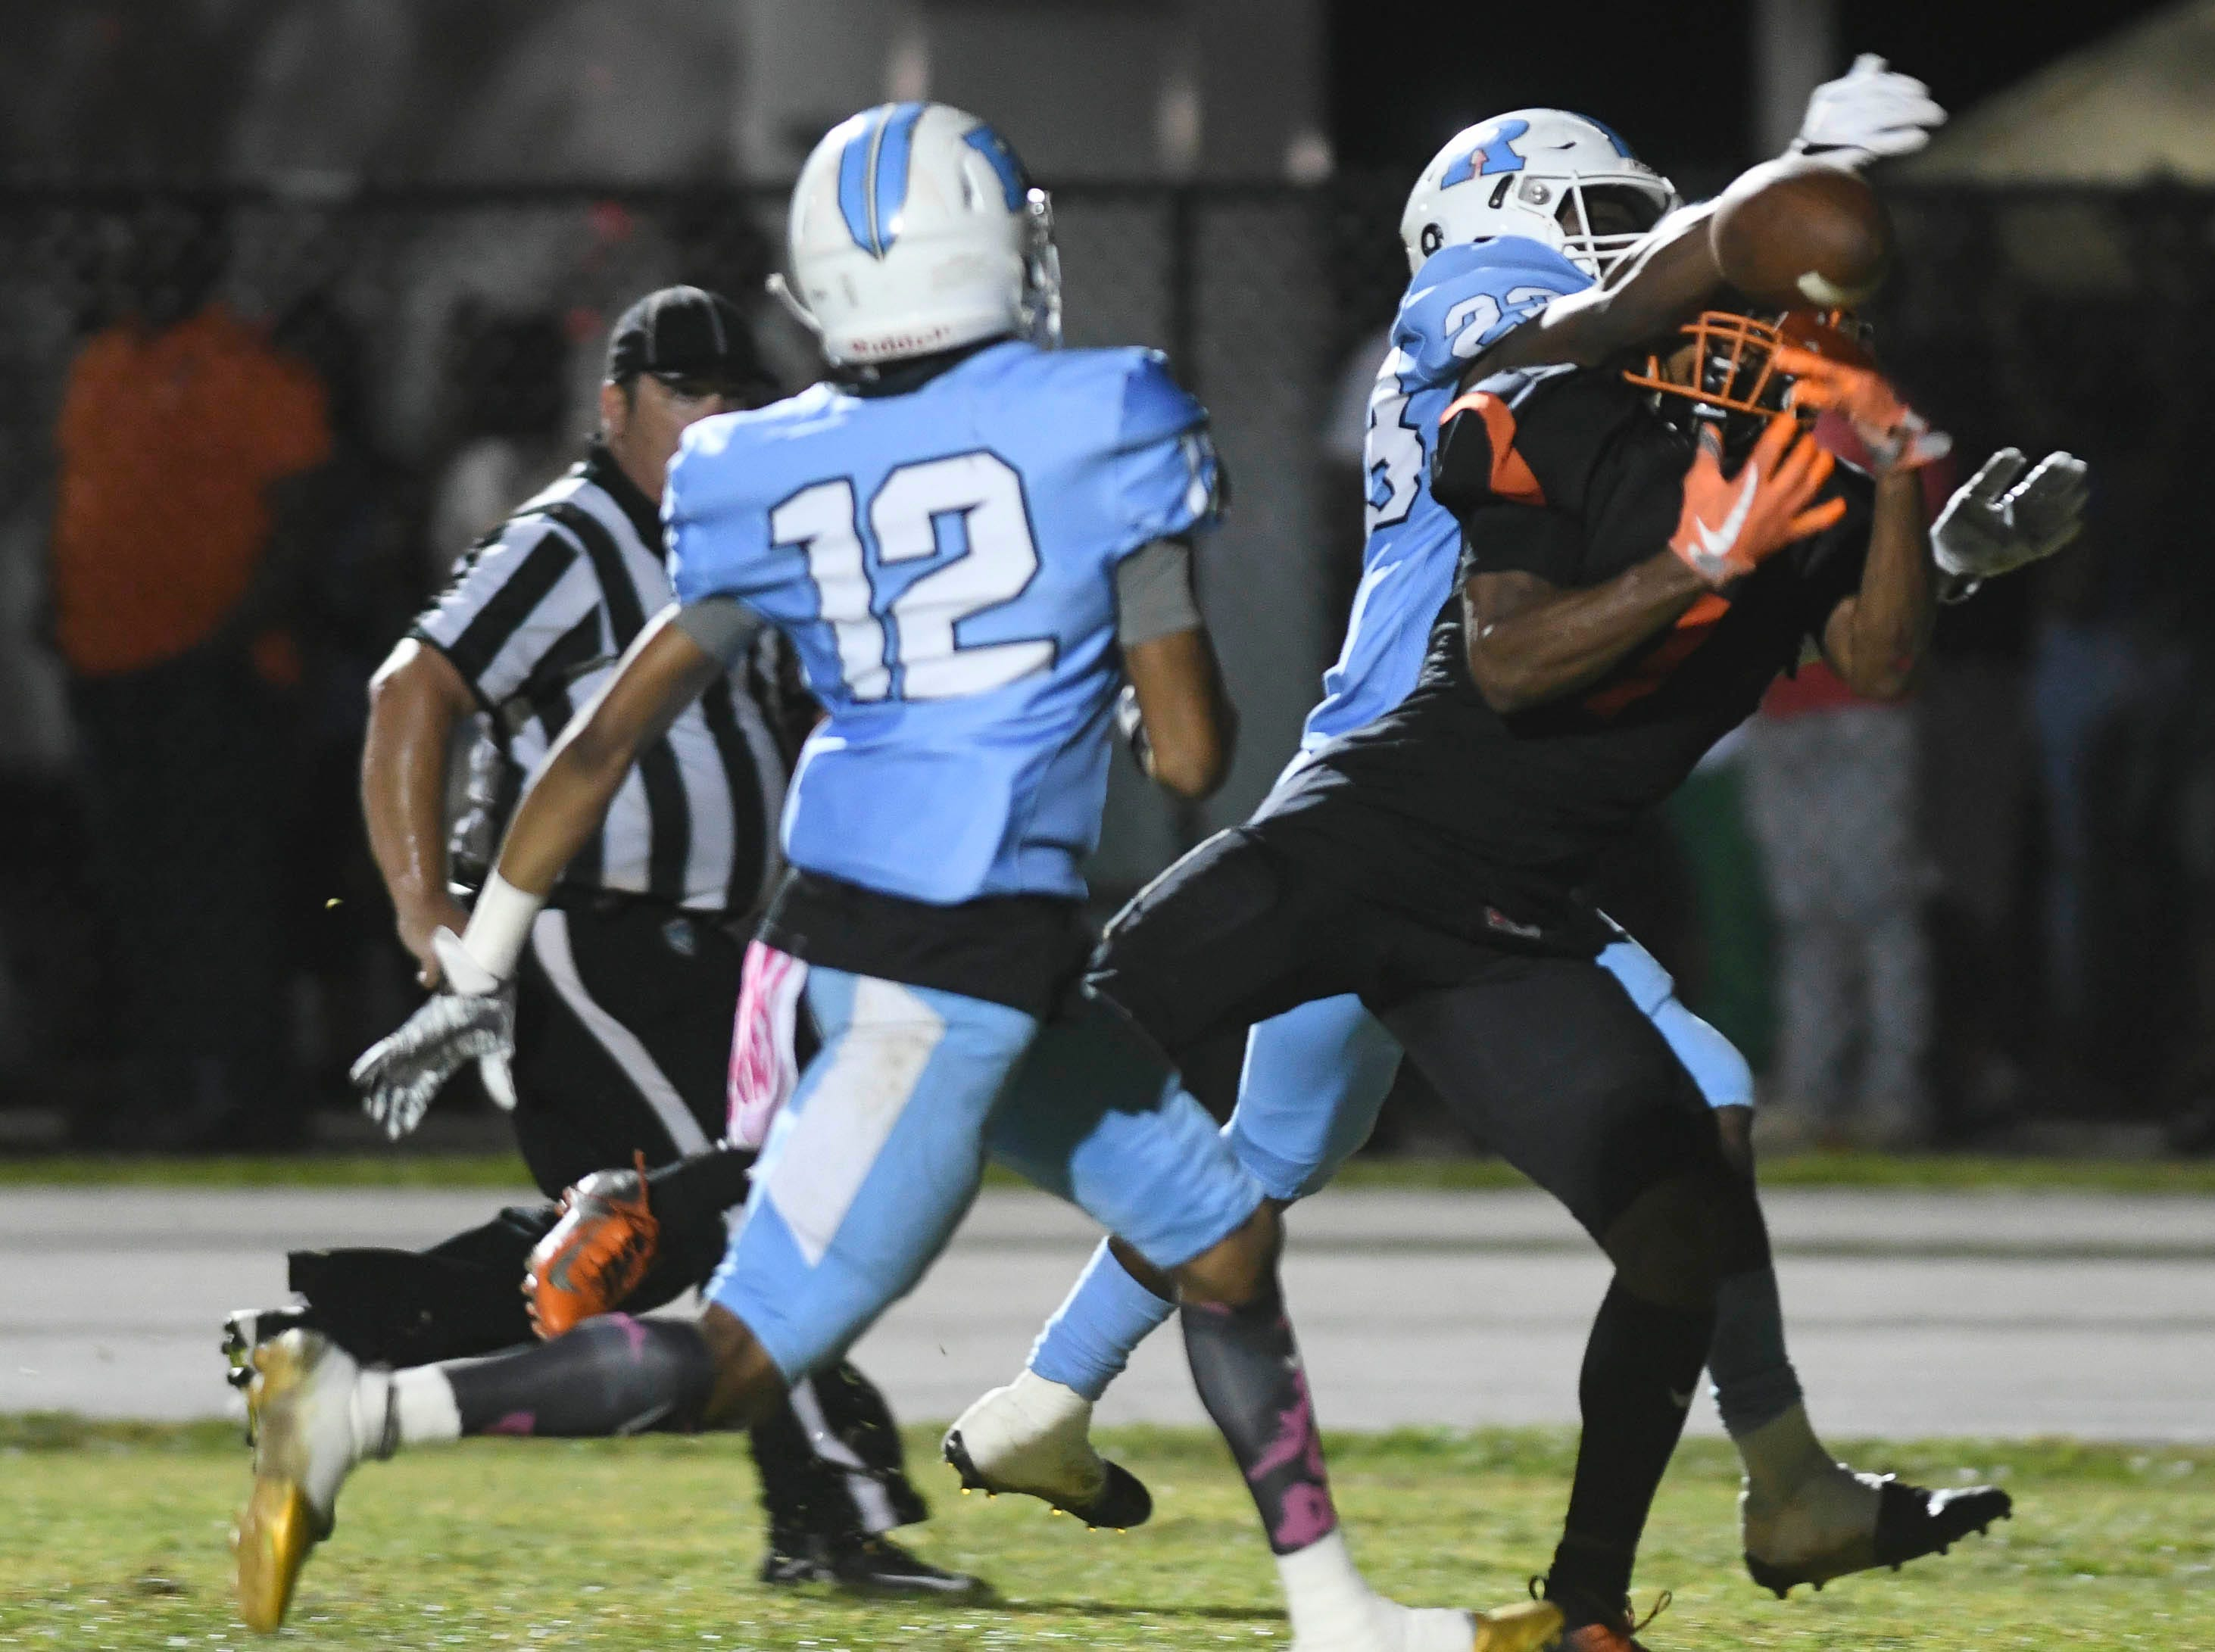 Shuntory Jordan (12) and Maurice Griffin of Rockledge keep Cocoa's Willie Gaines from catching this pass in the end zone during Friday's game.